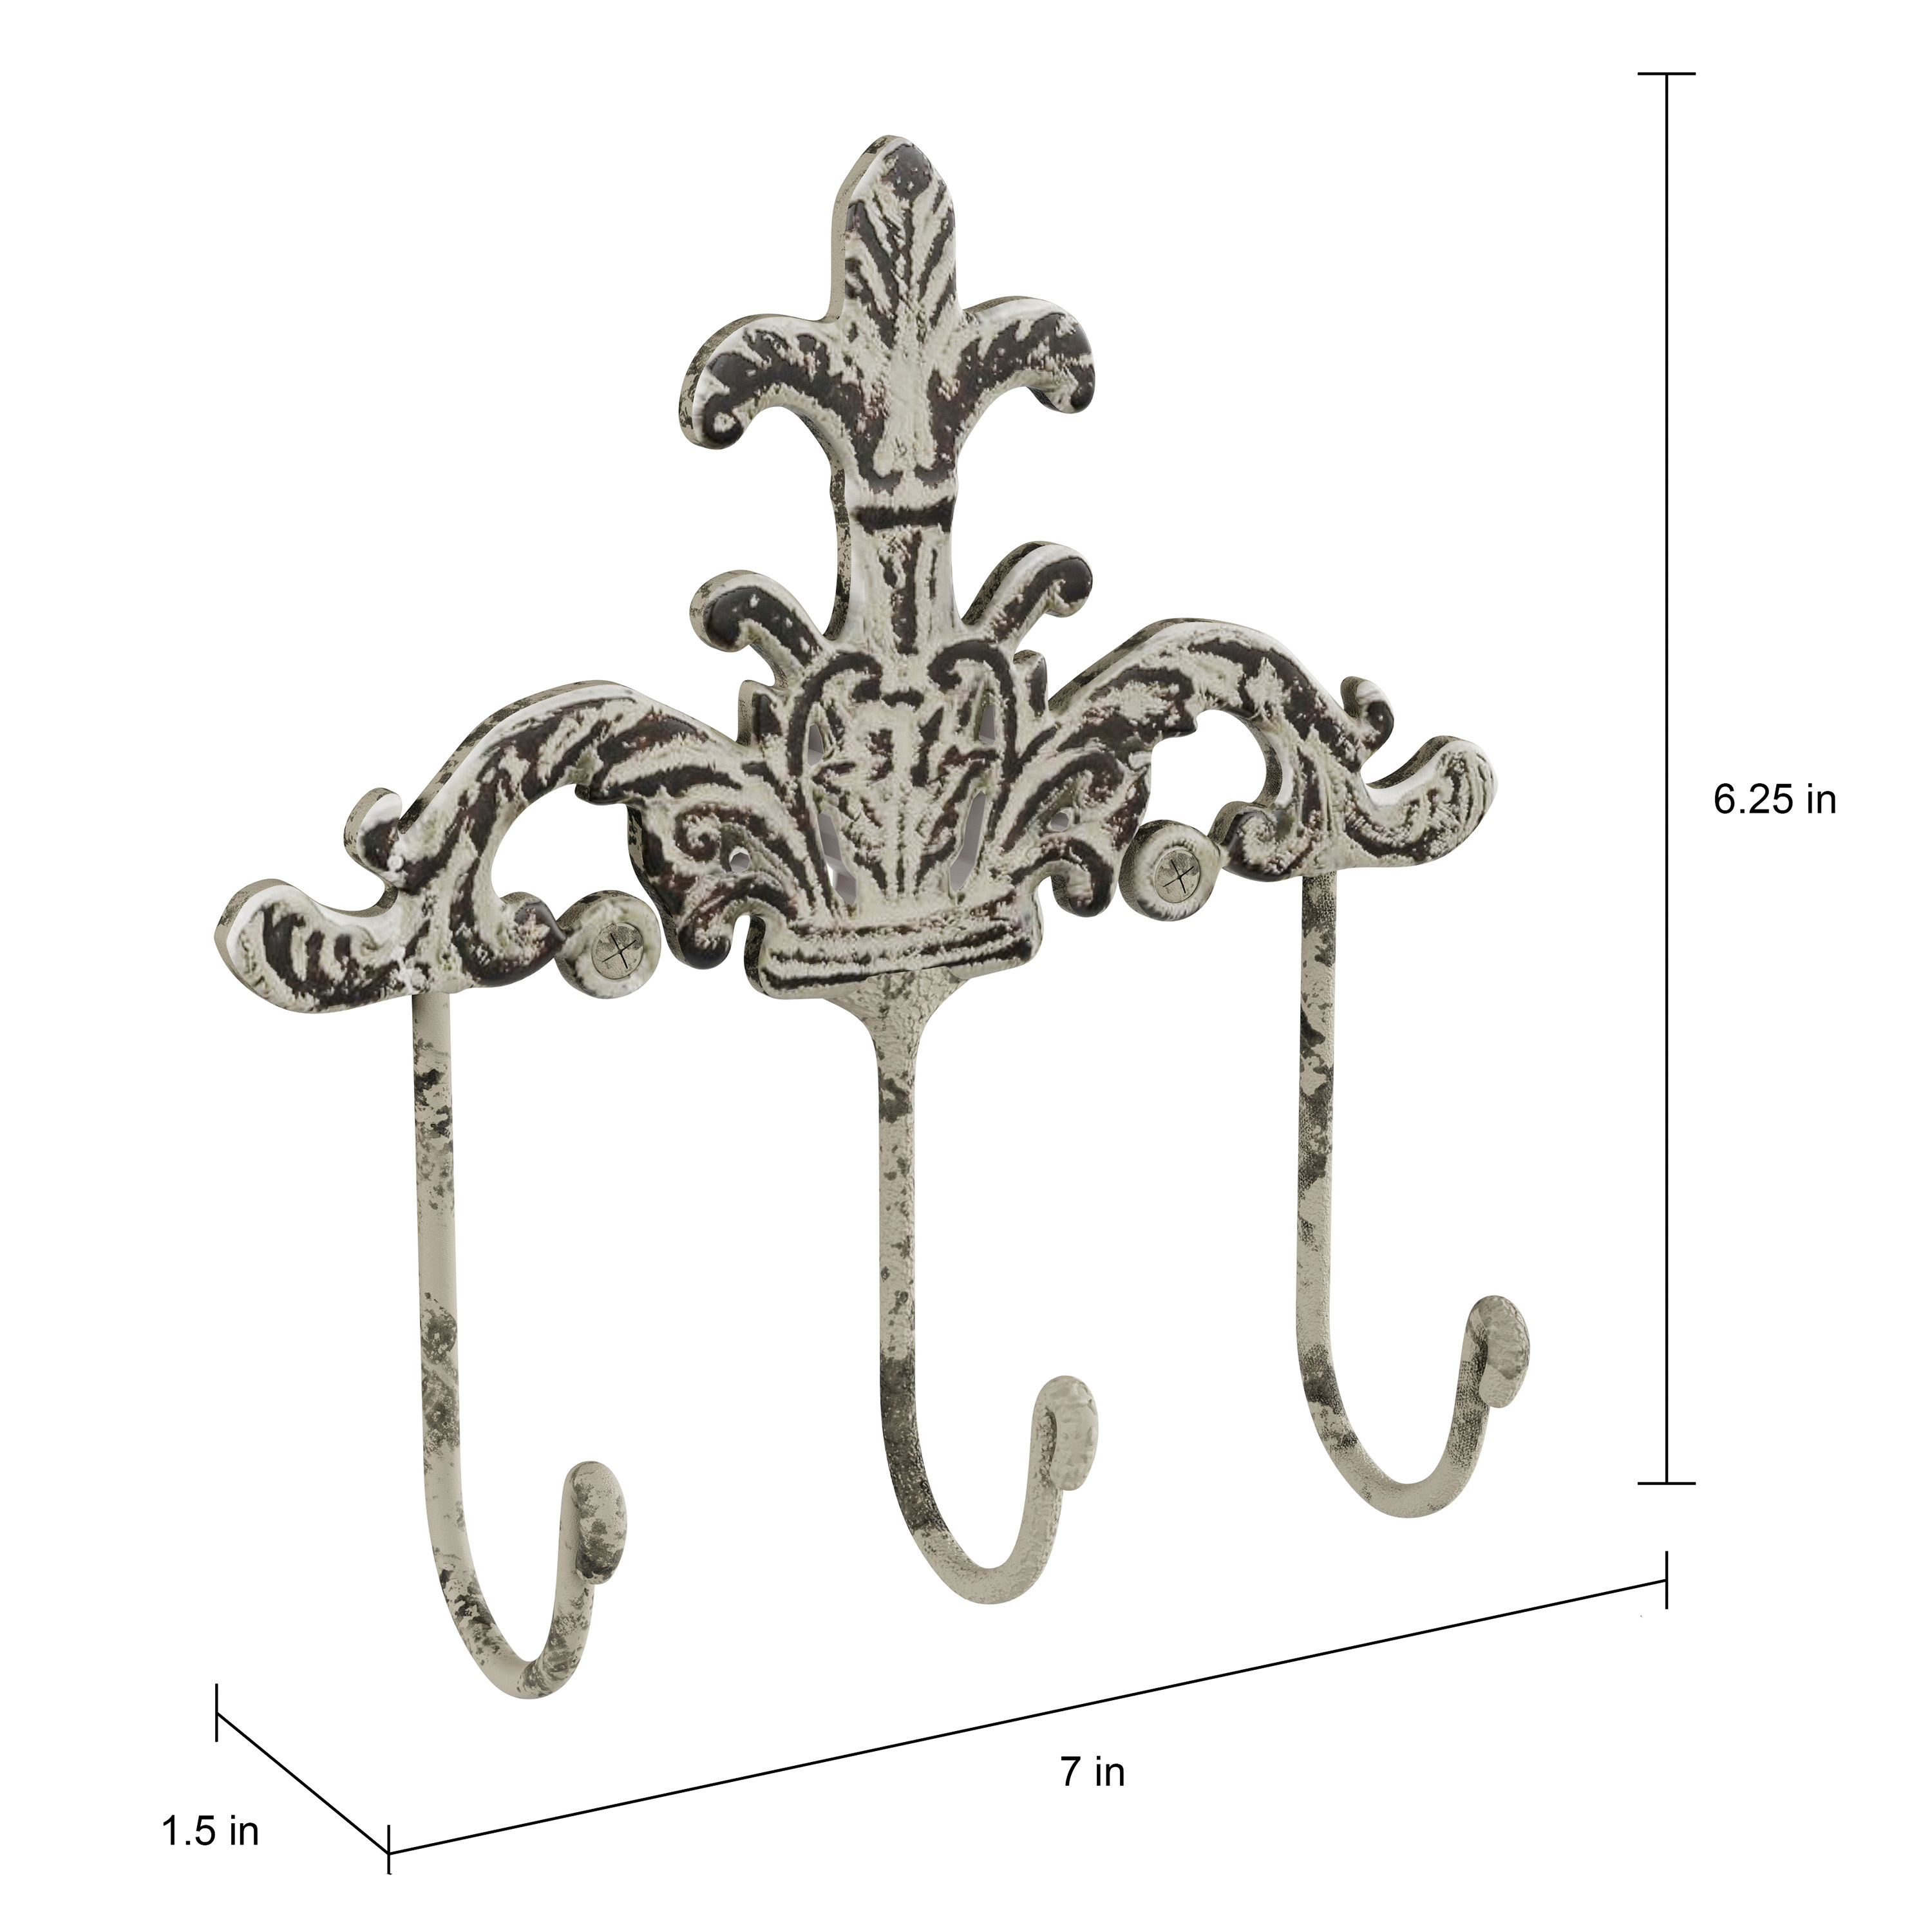 Decorative Hooks 3 Pronged Cast Iron Shabby Chic Rustic Fleur De Lis Wall Mount Hooks For Coats, Hats, Jewelry, And Morelavish Home (Set Of 2) For 2 Piece Metal Wall Decor Sets By Fleur De Lis Living (Gallery 25 of 30)